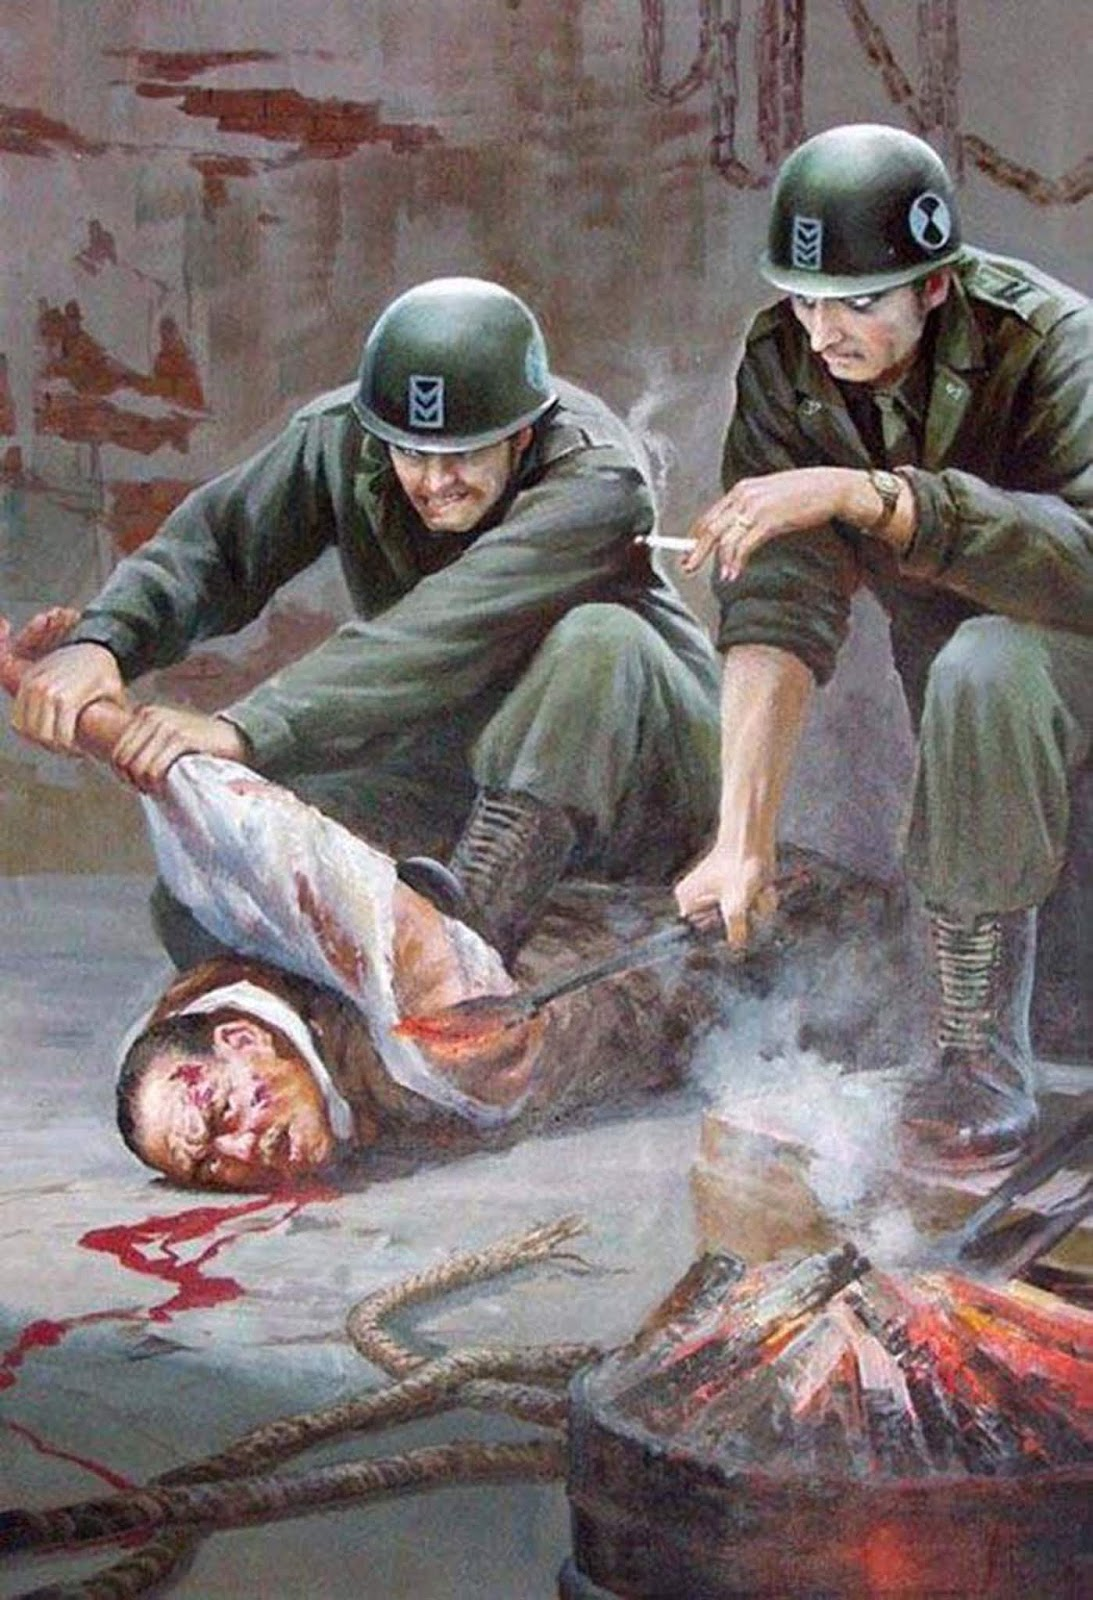 One painting shows a soldier burning the armpit of a man.